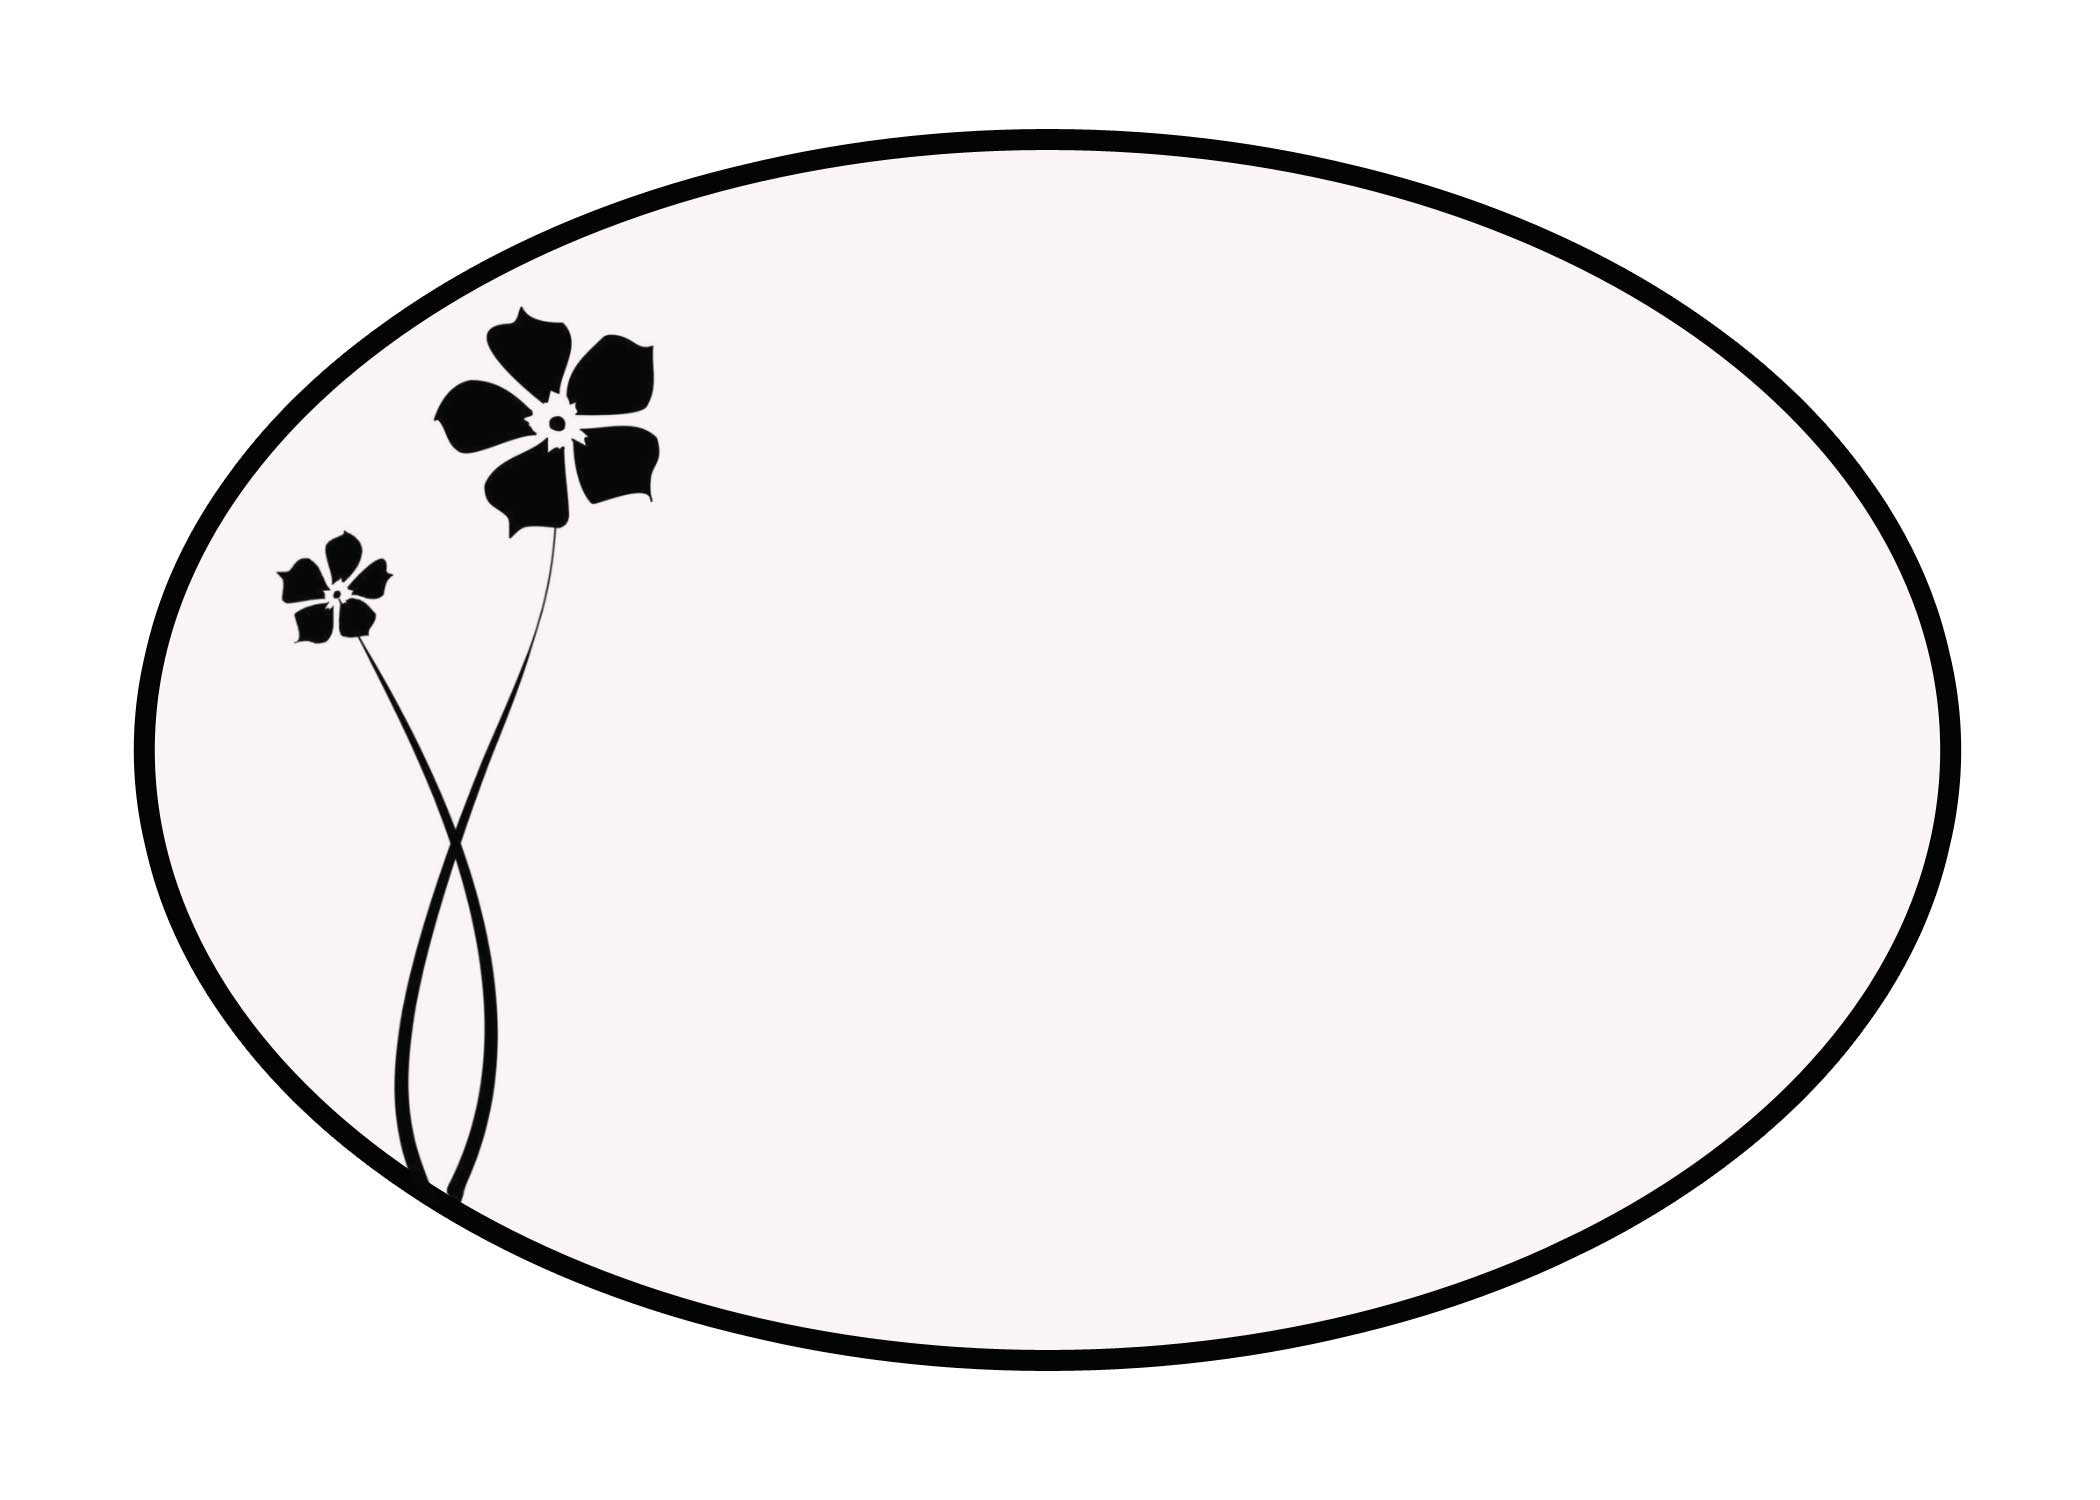 Oval Template Clipart